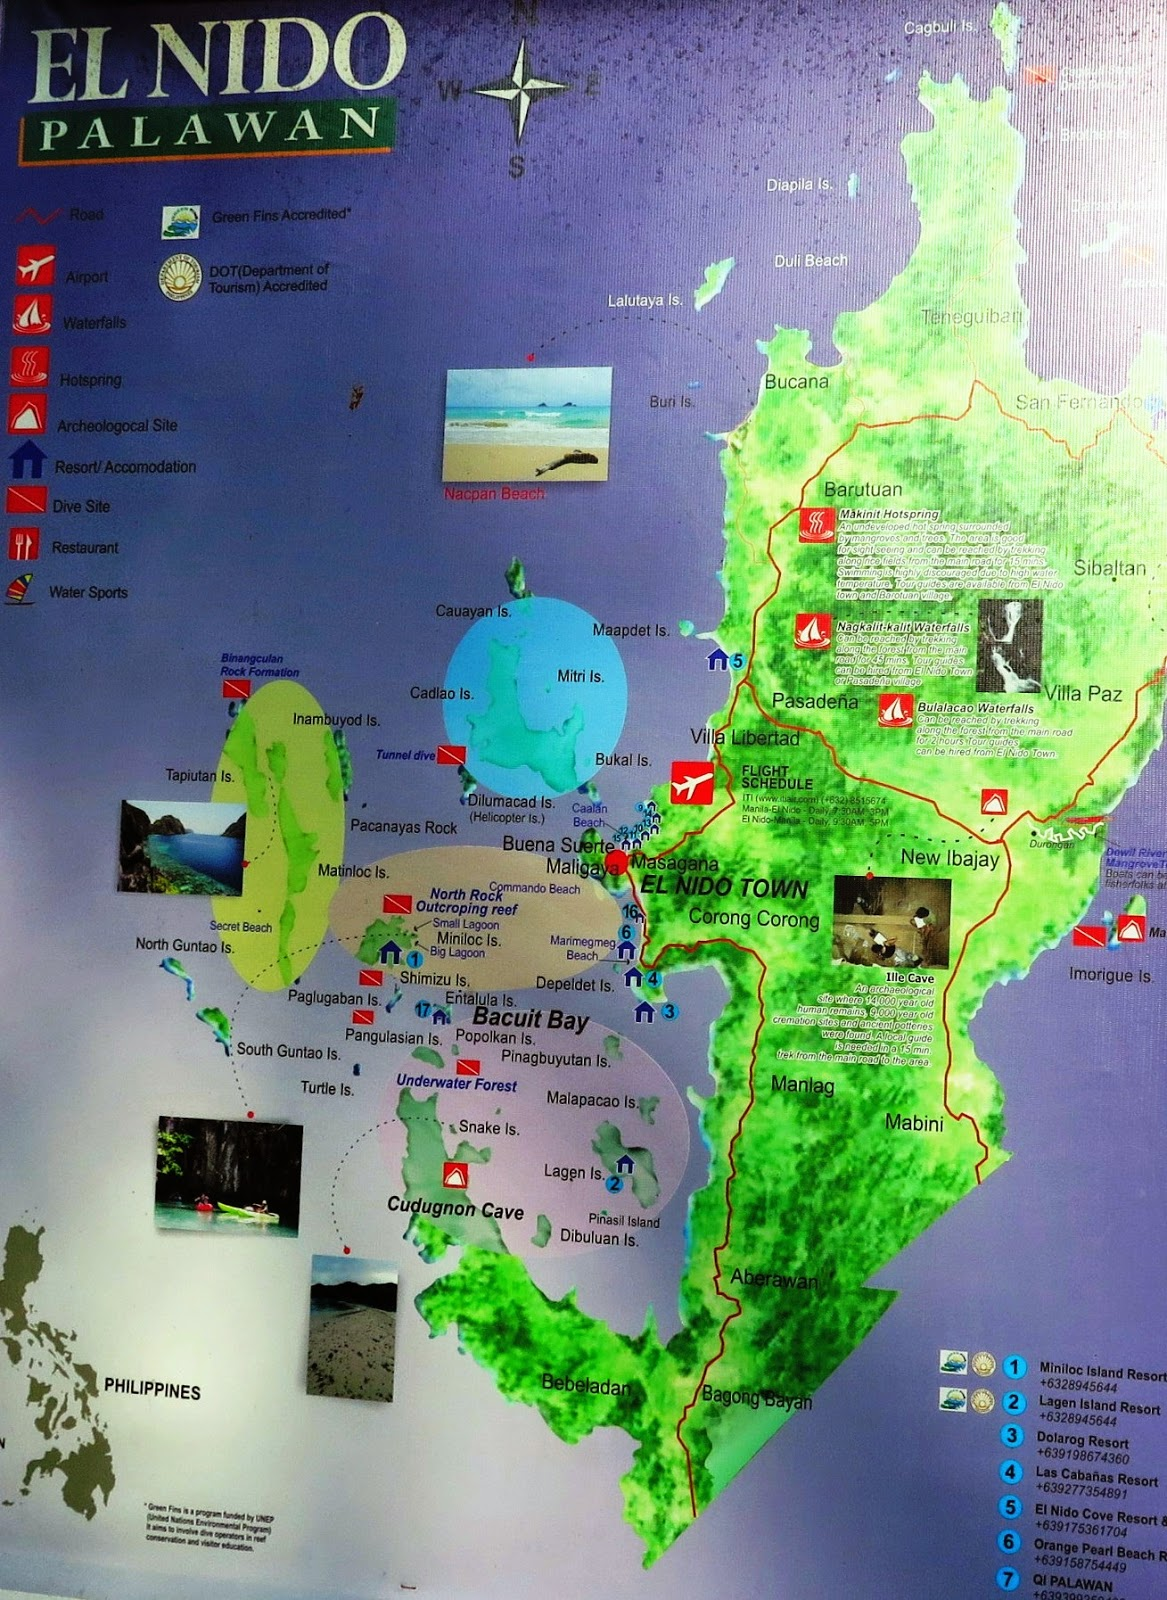 el nido map, el nido palawan, map el nido, el nido tourist guide, el nido tourist attractions, el nido islands